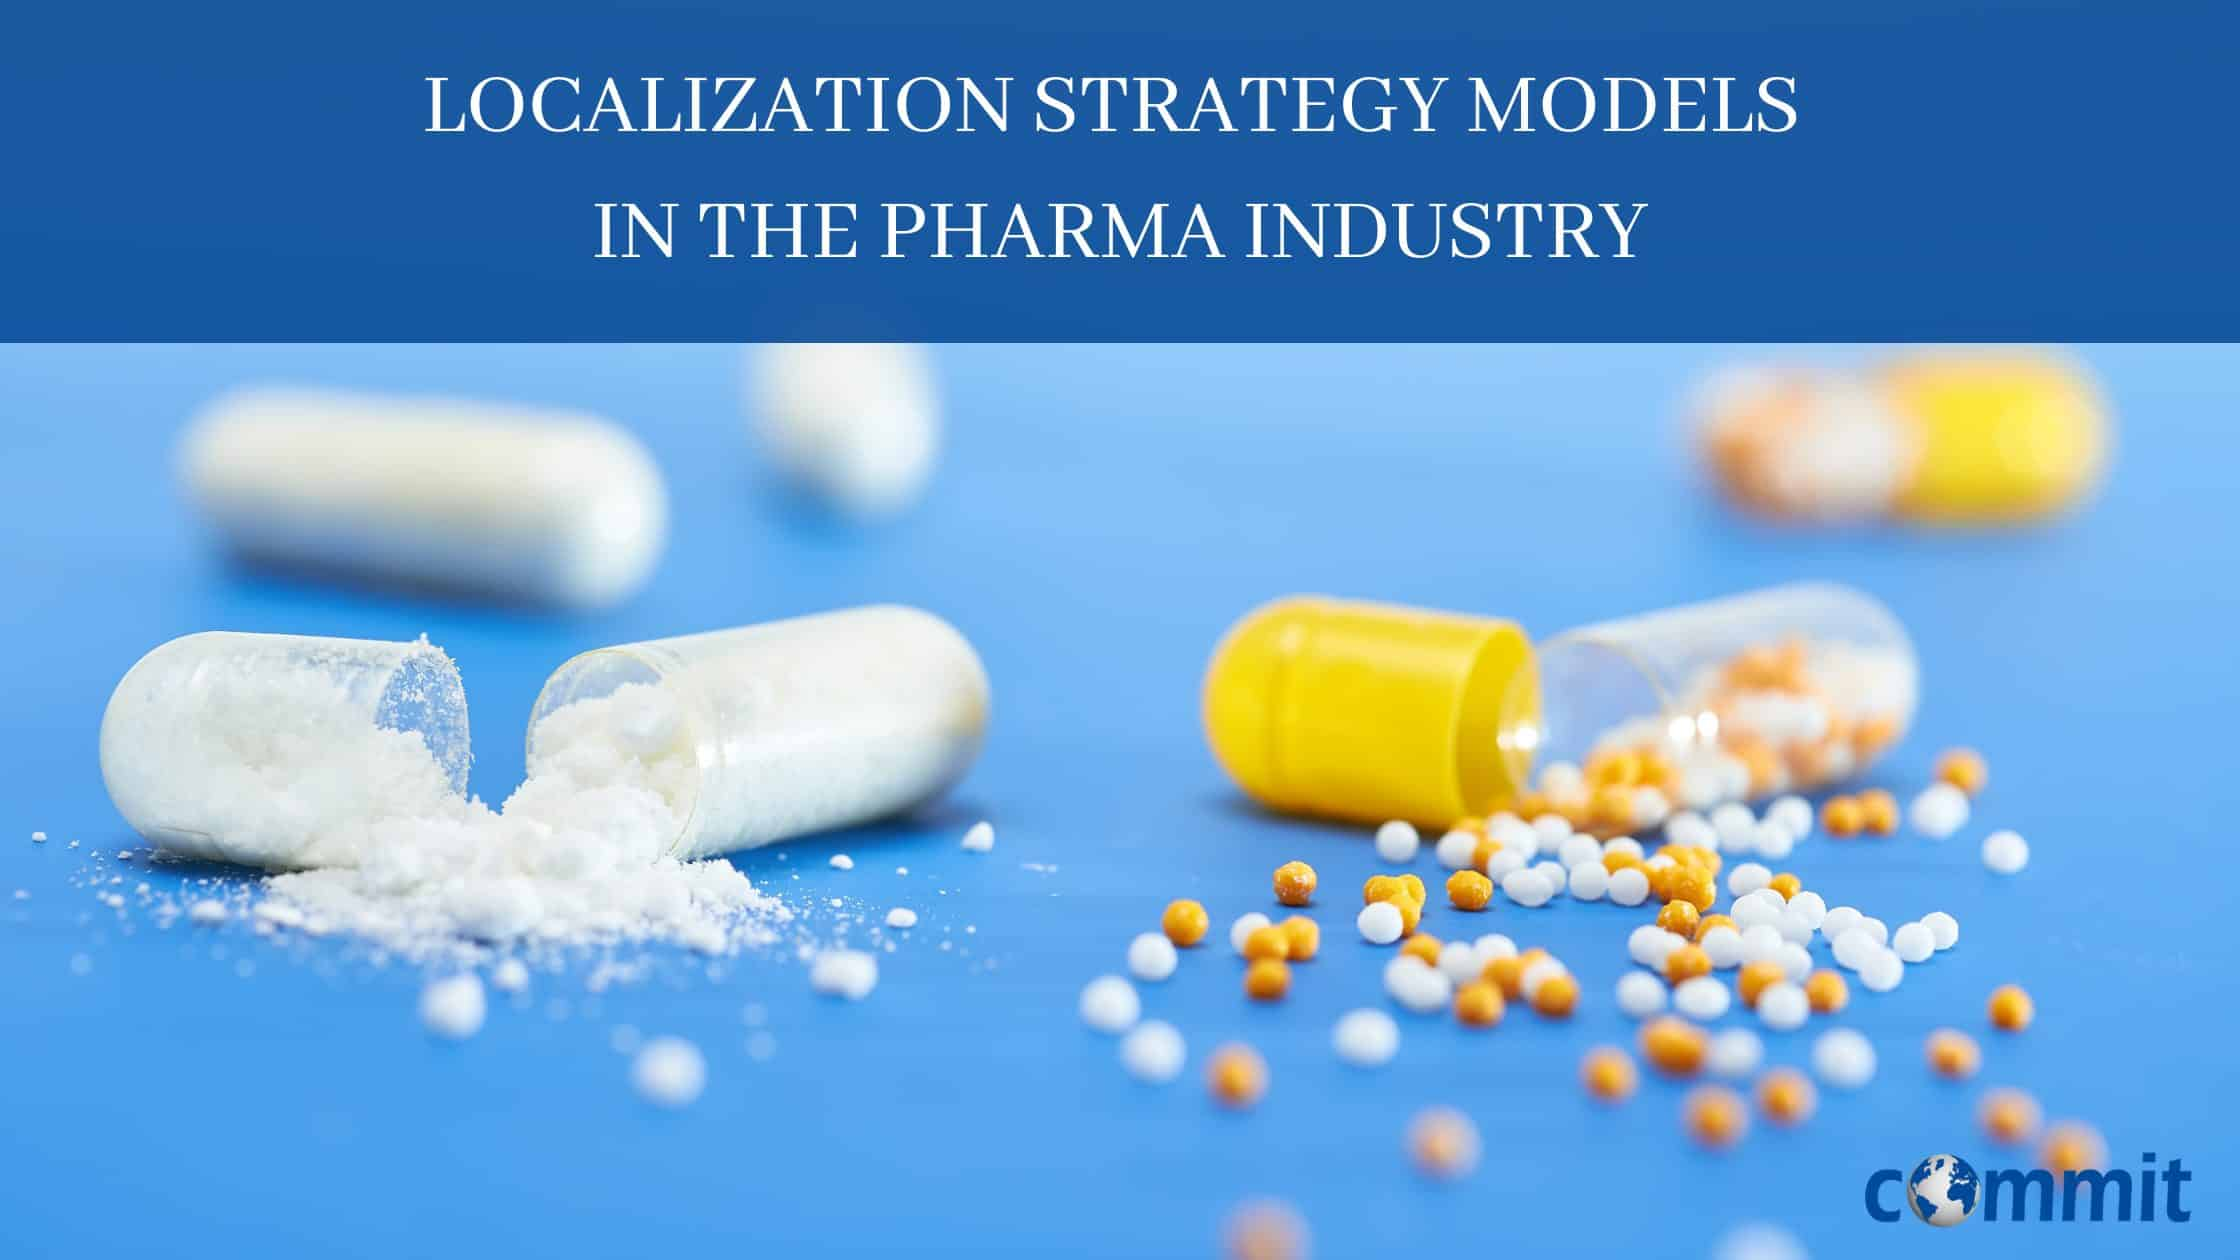 Localization strategy models in the pharma industry + checklists